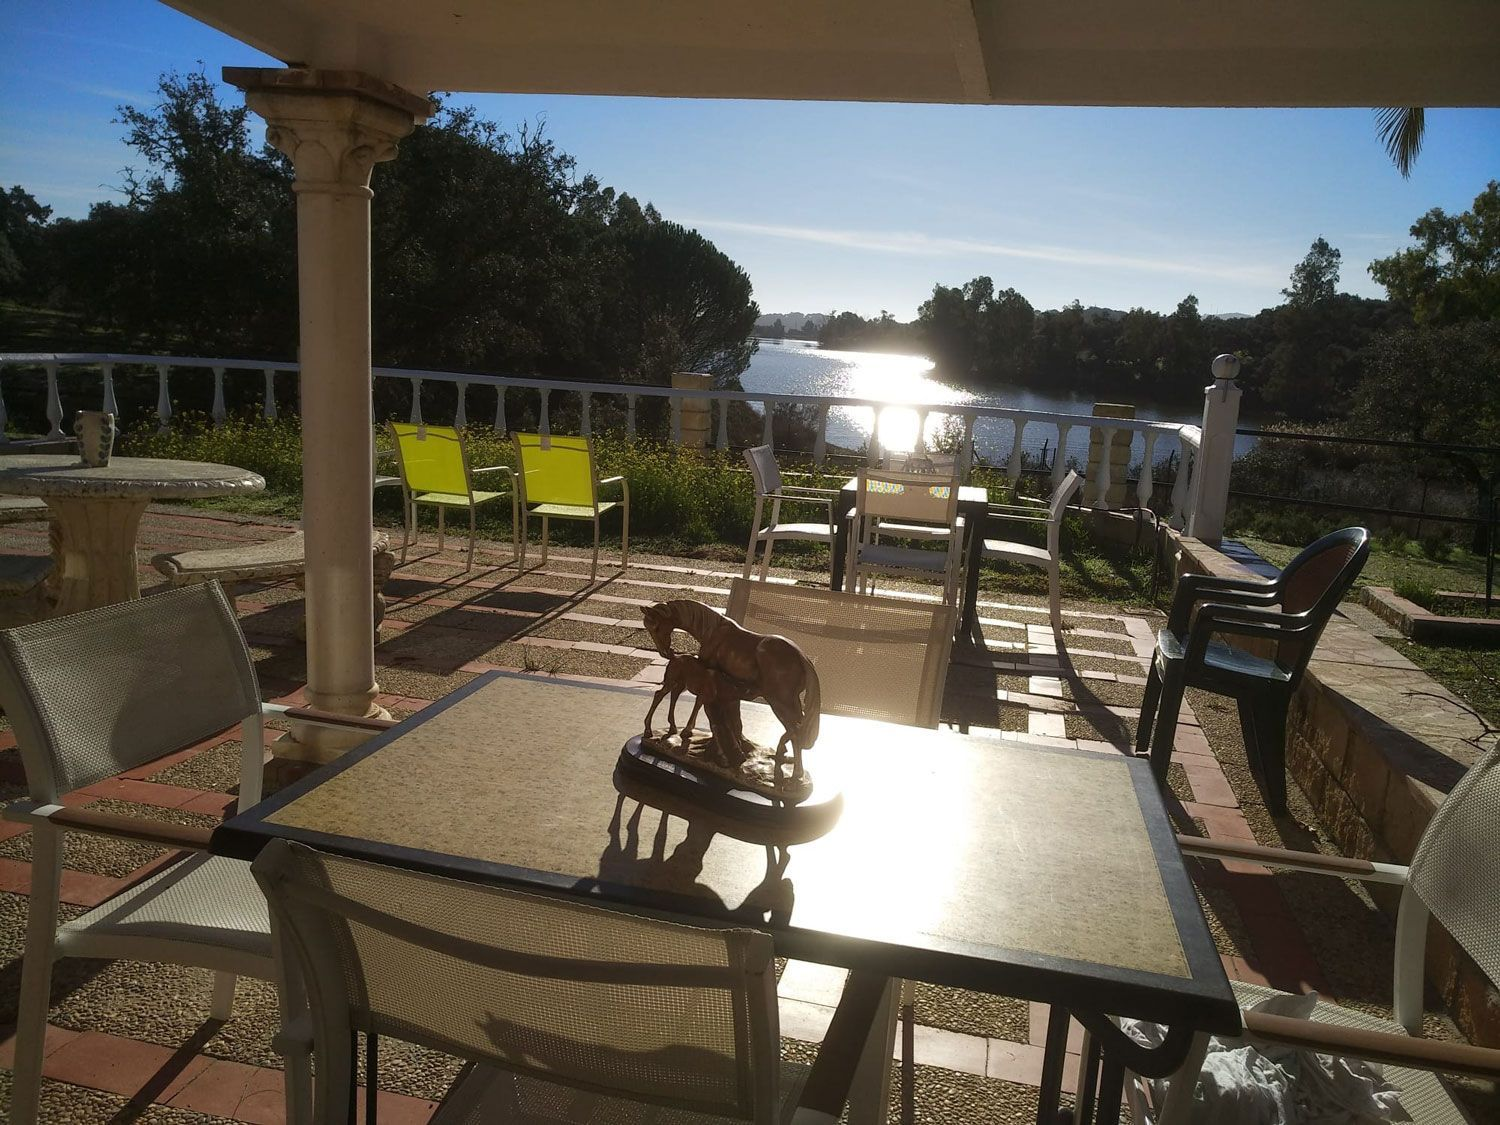 Views from the terrace of our rural farm in Cordoba on the shores of a lake